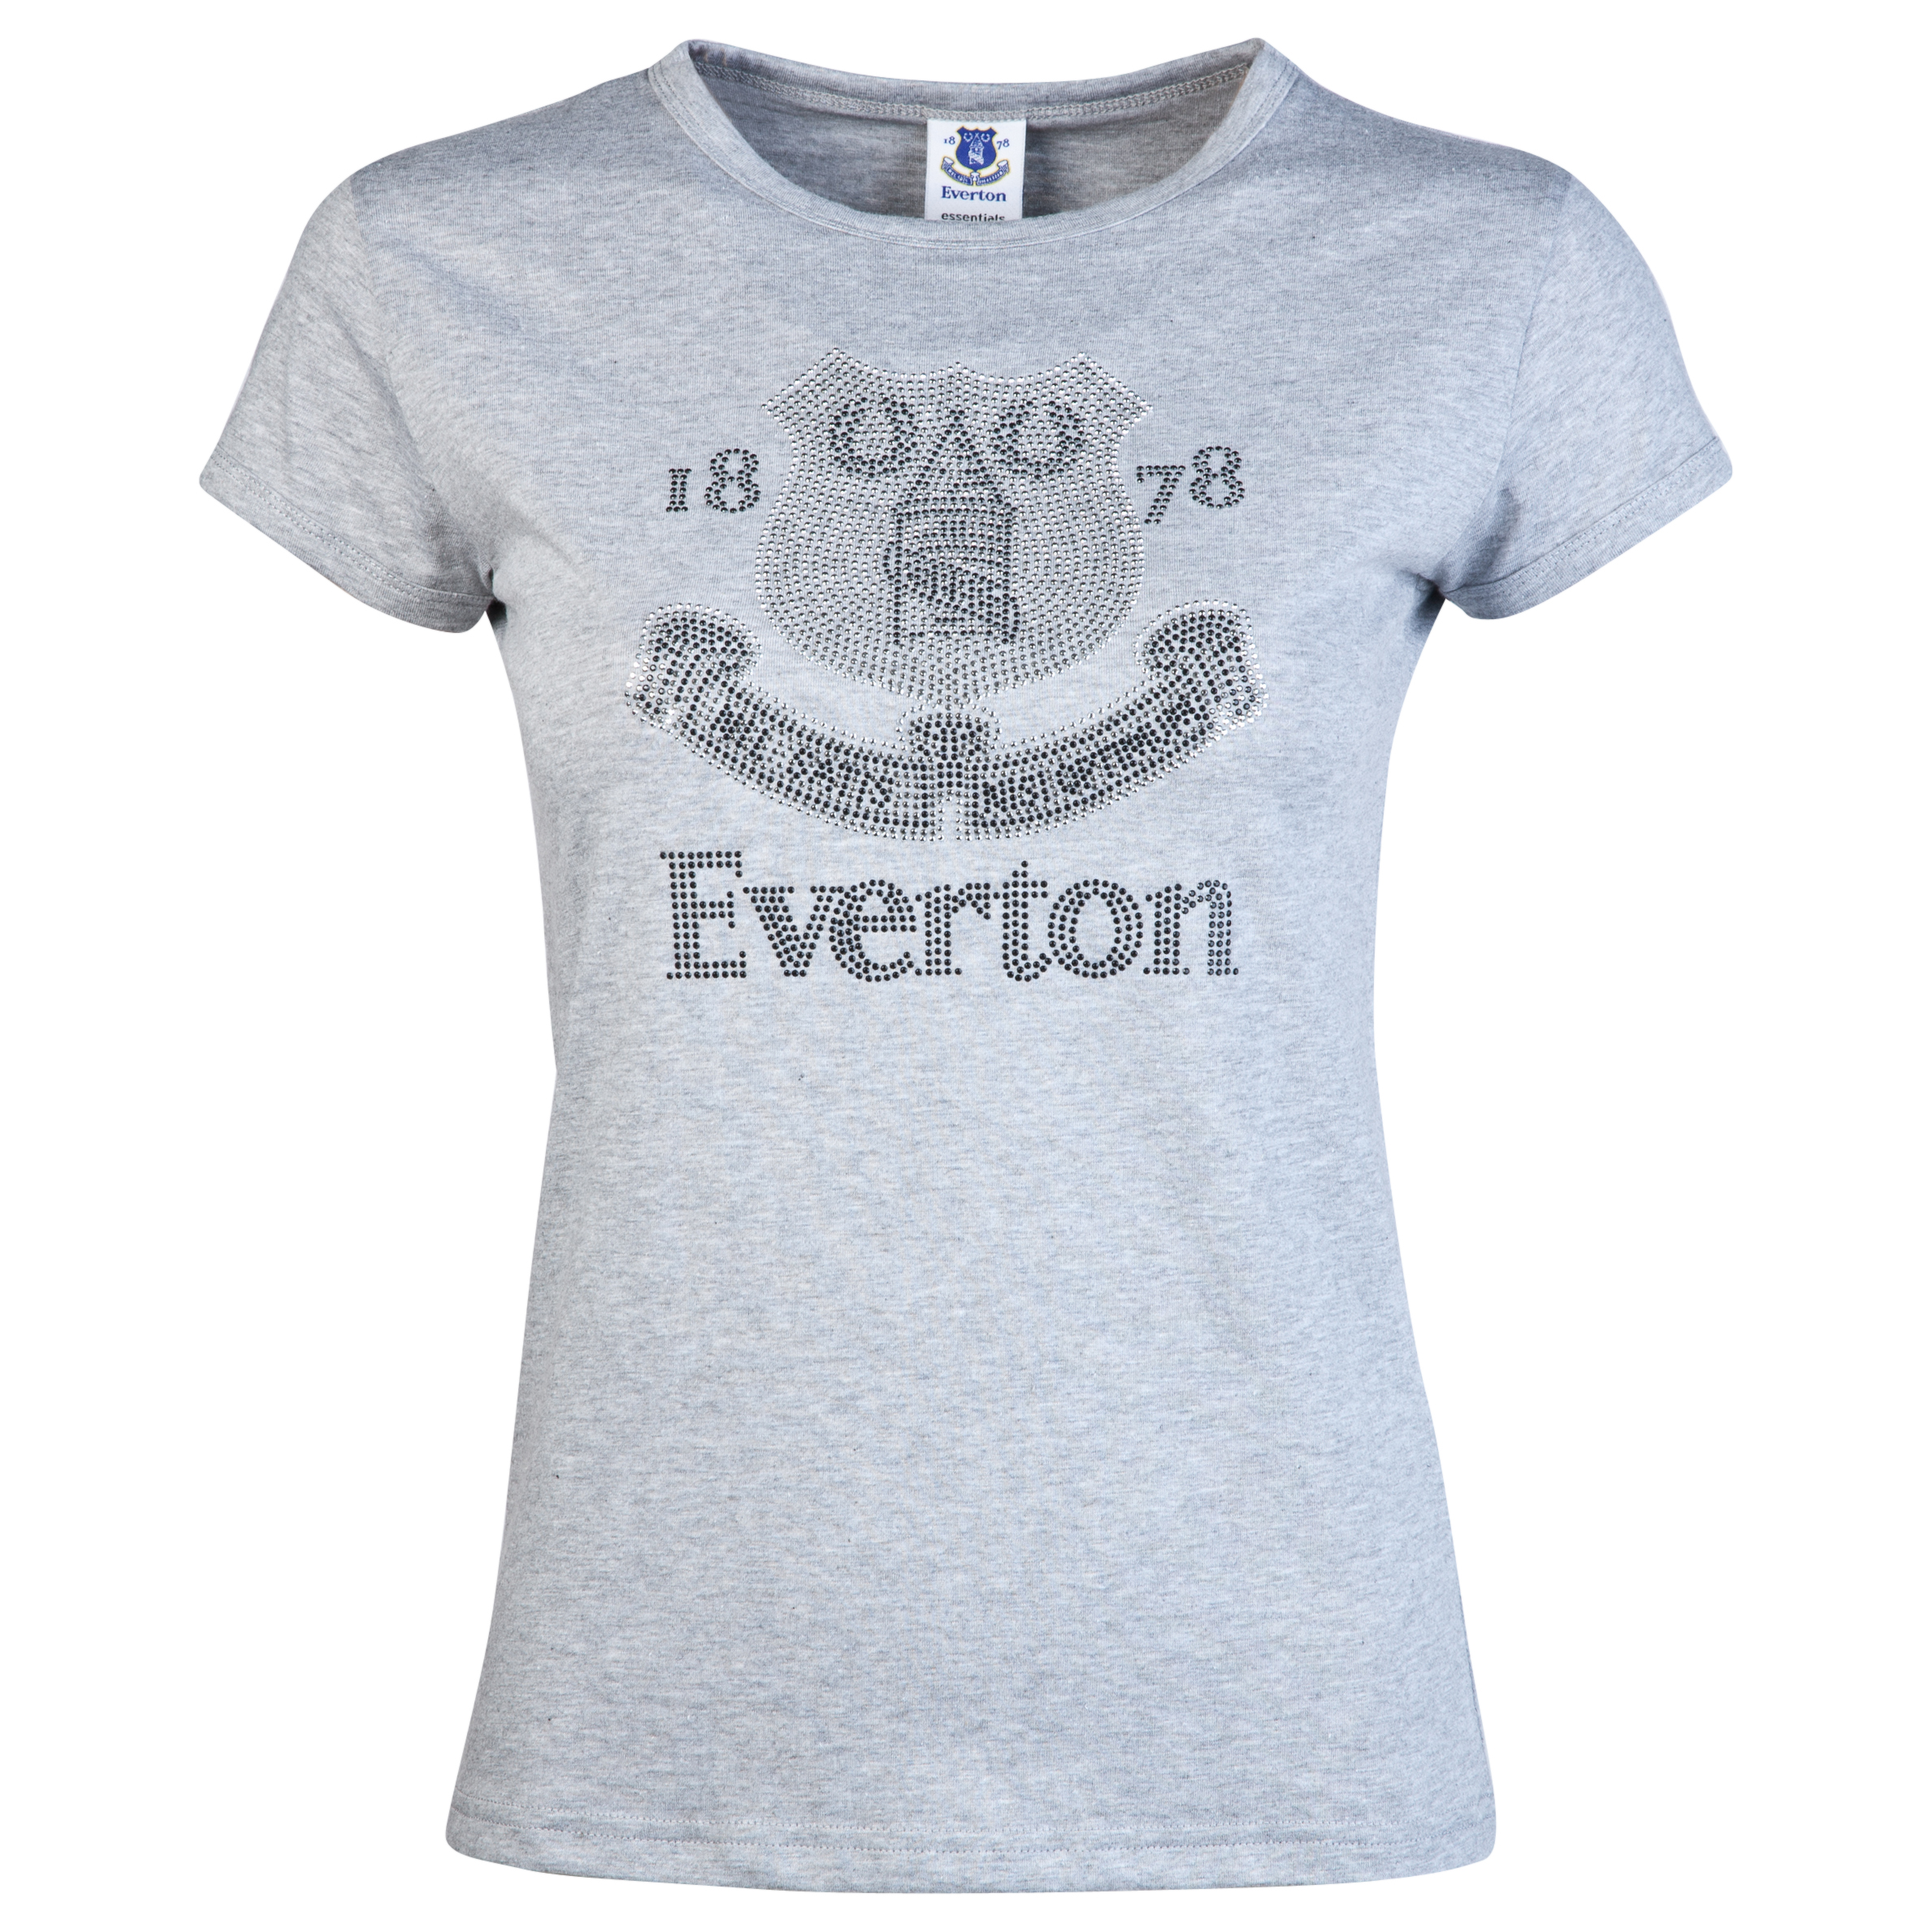 Everton Rhinestone T-Shirt - Grey Marl - Womens